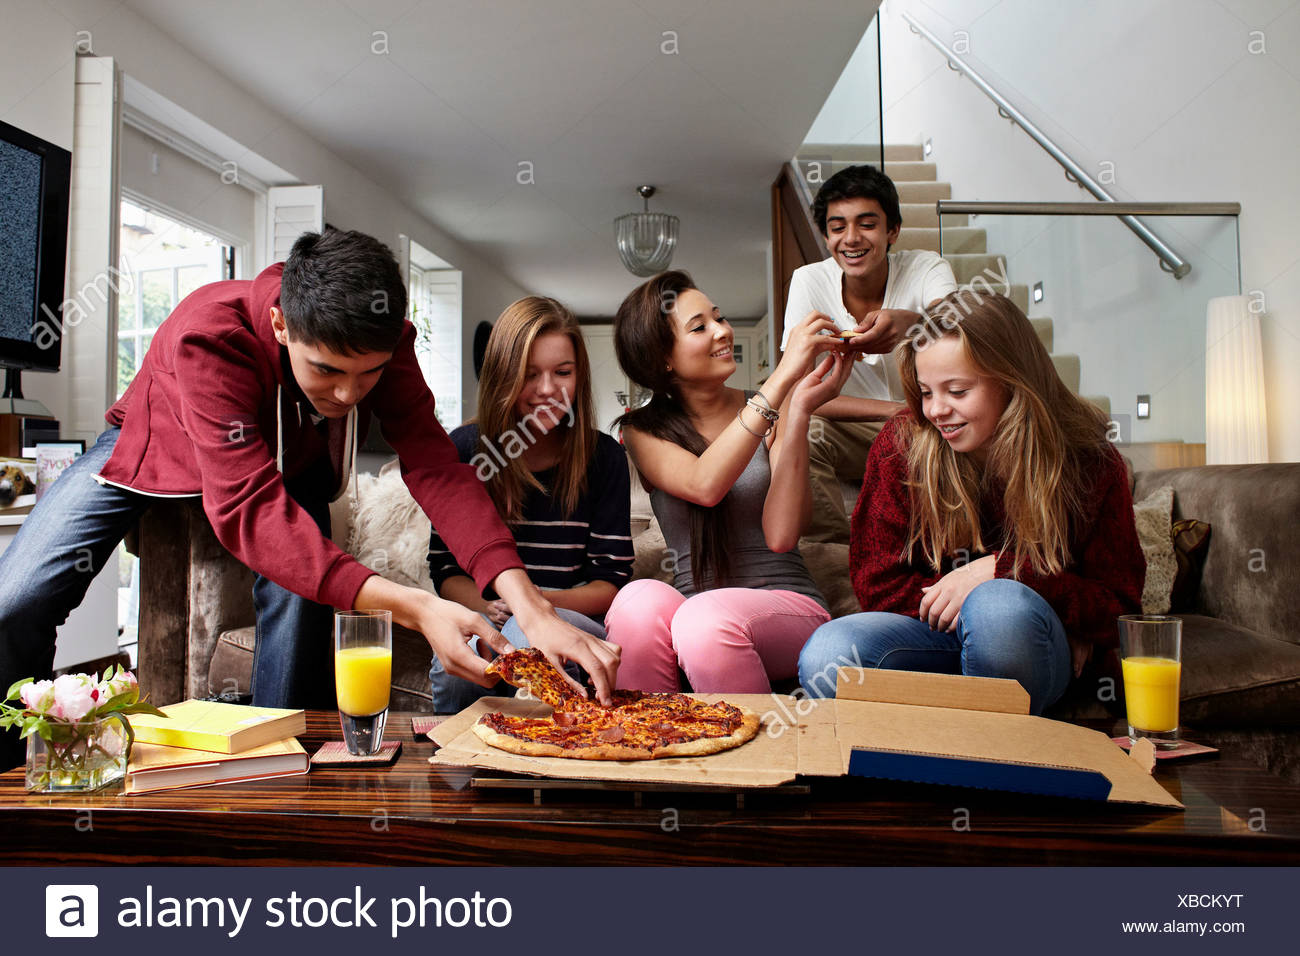 Les adolescents ayant emporter pizza Photo Stock